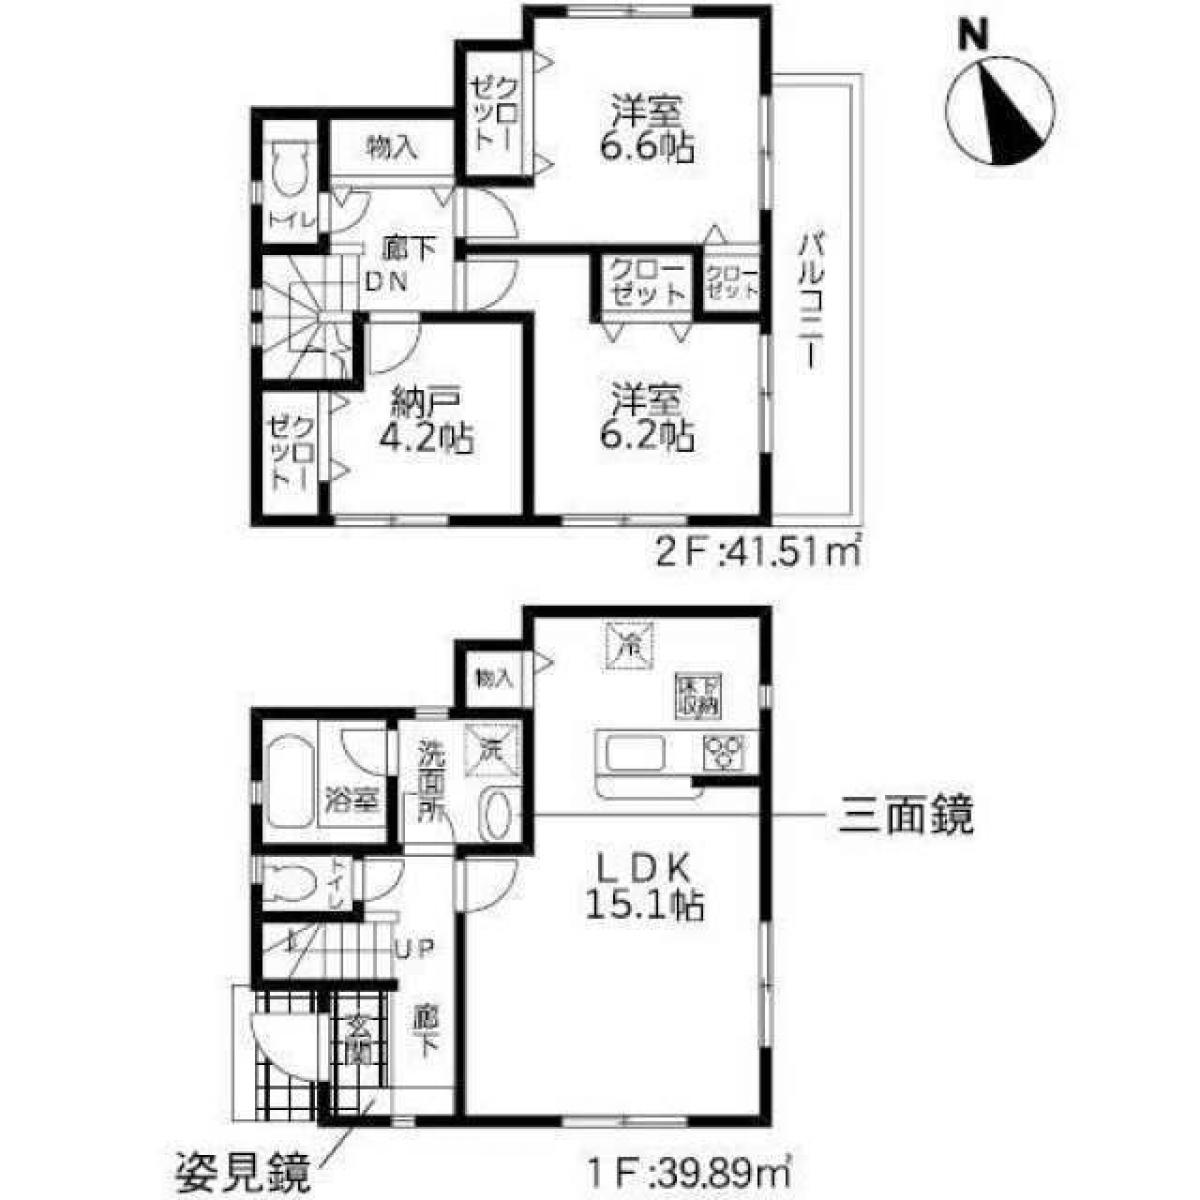 Property listed For Sale in Ishinomaki Shi, Japan